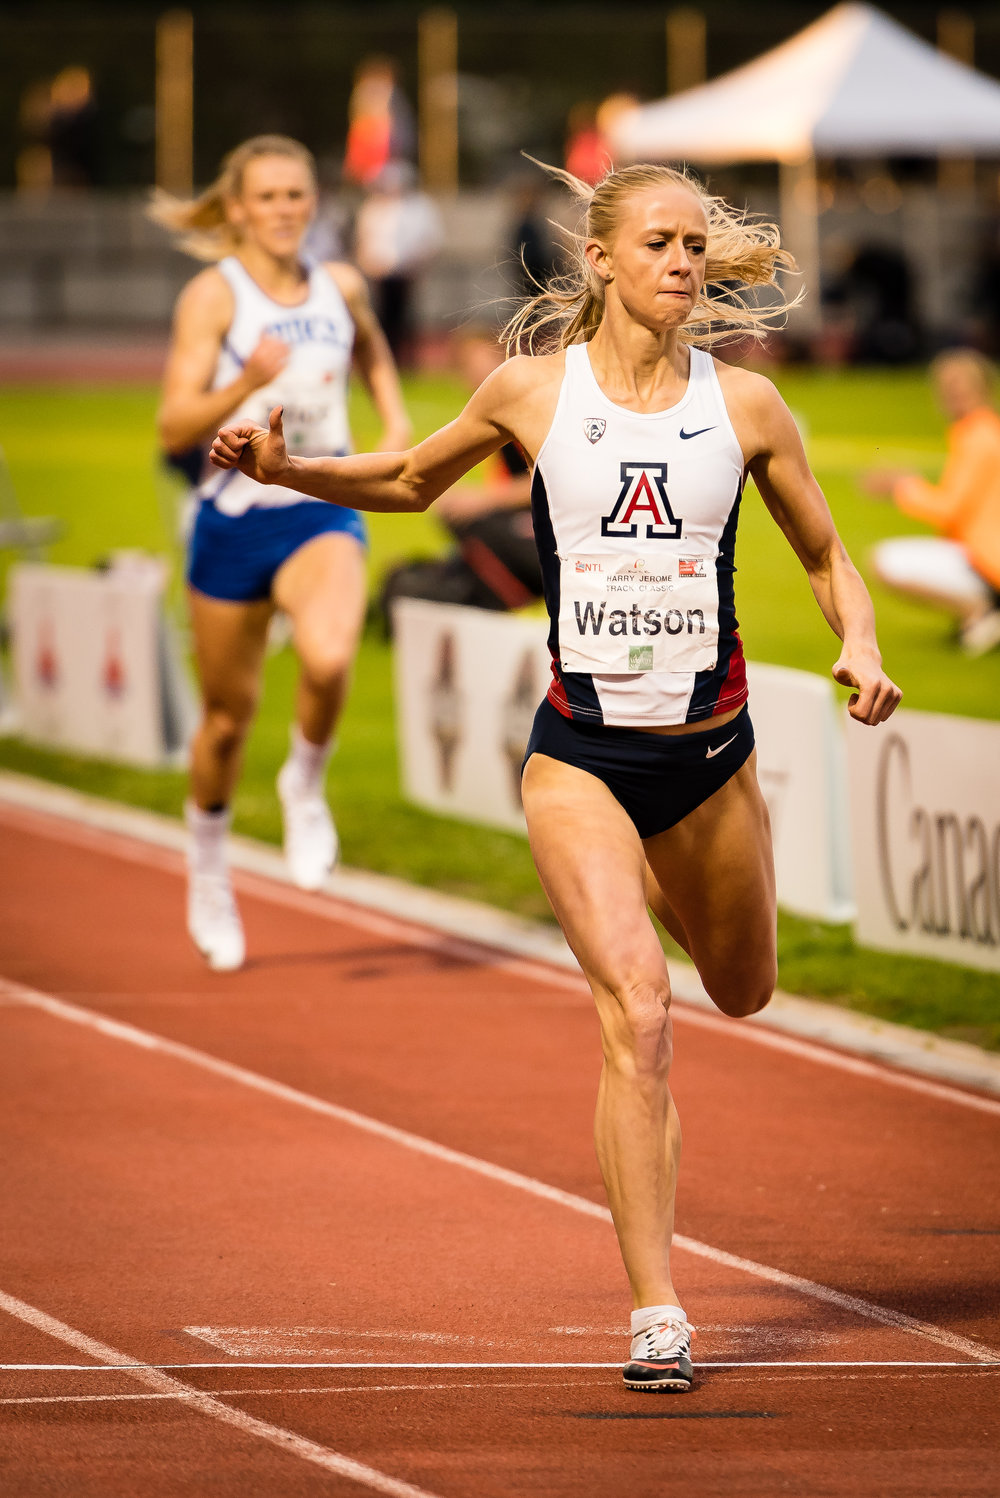 Sage Watson ranked 11th in World by All-Athletics.com        photo by Brian Cliff